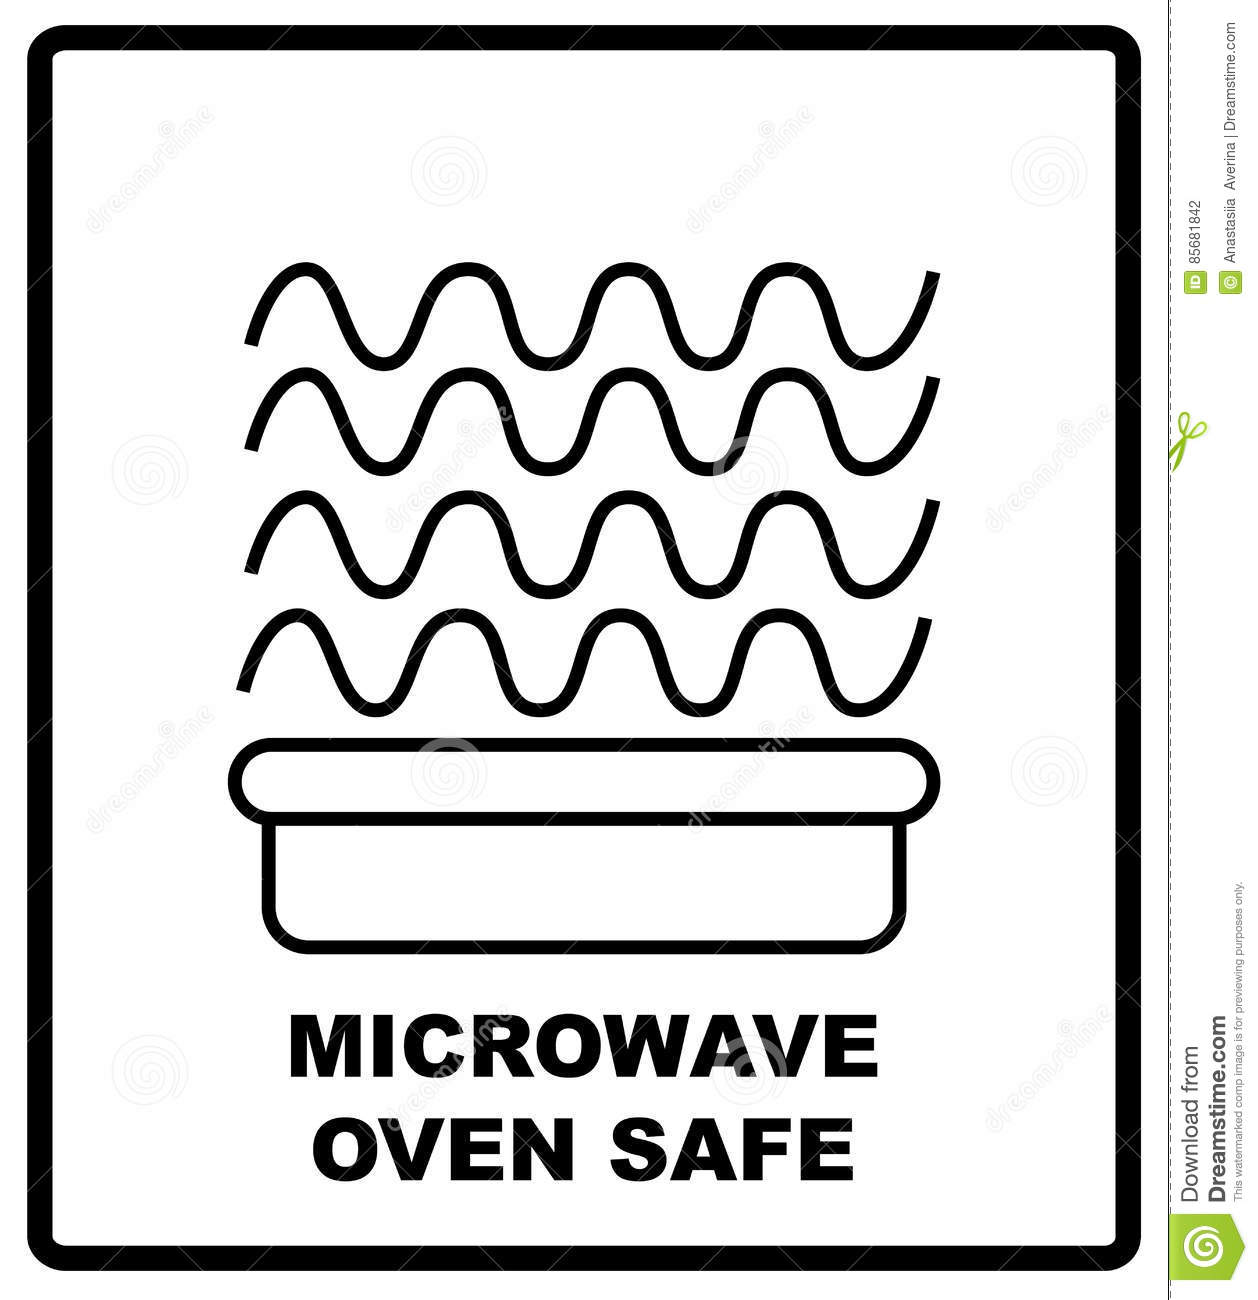 Microwave oven safe symbol isolated vector illustration symbol microwave oven safe symbol isolated vector illustration symbol for use in package layout design for use on cardboard biocorpaavc Images